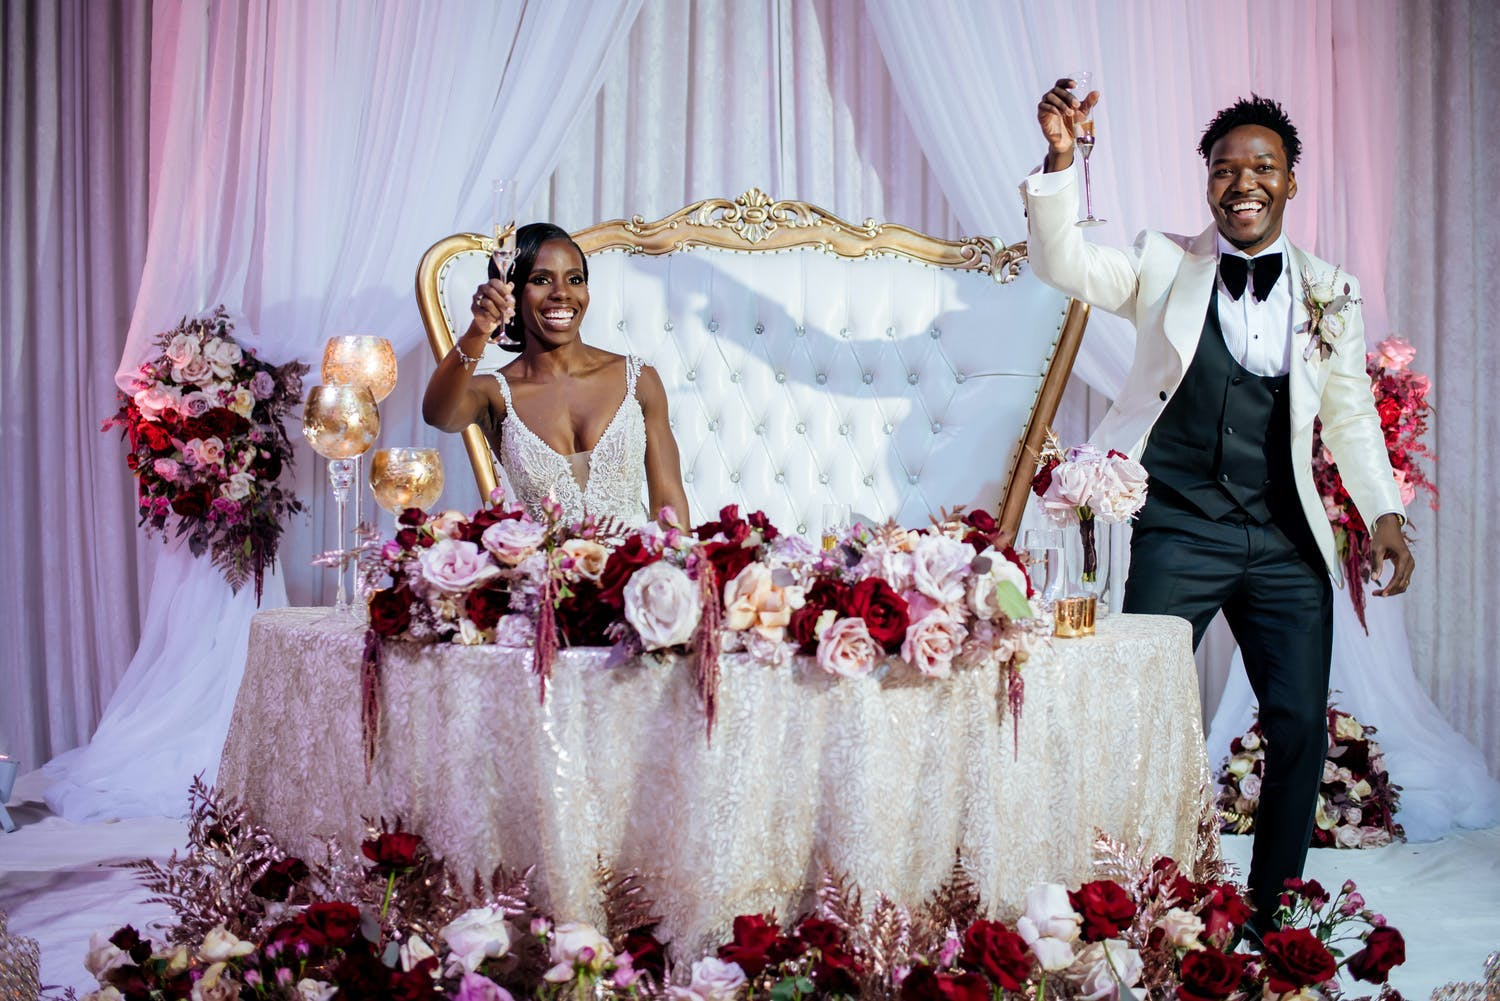 Bride and groom toast at sweetheart table with pink and red flowers on table and at foot of the table   PartySlate